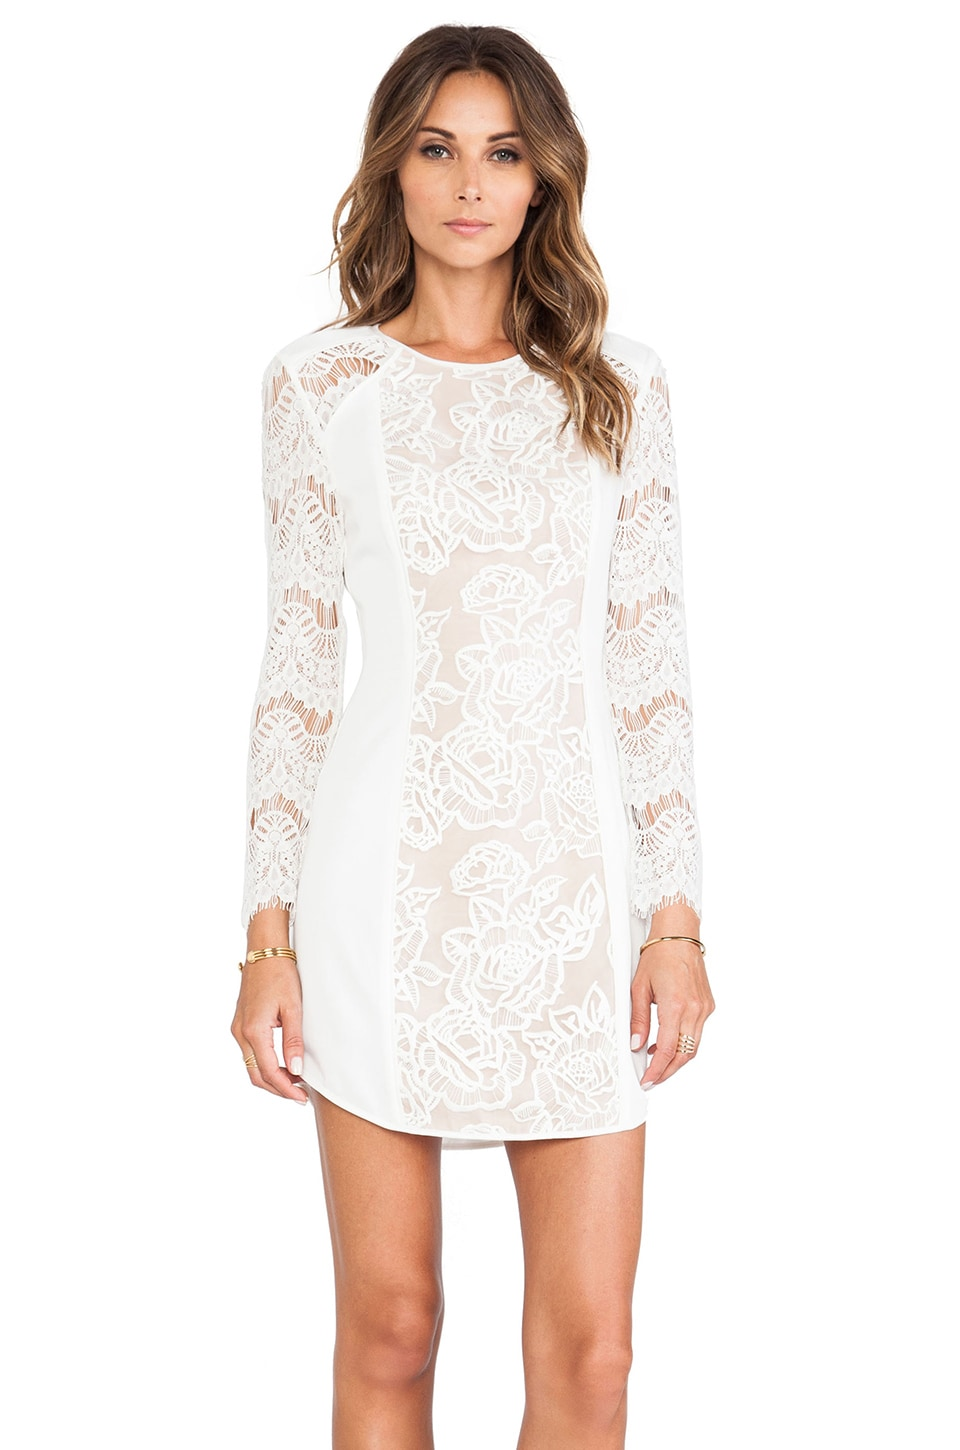 STYLESTALKER Lana Dress in White